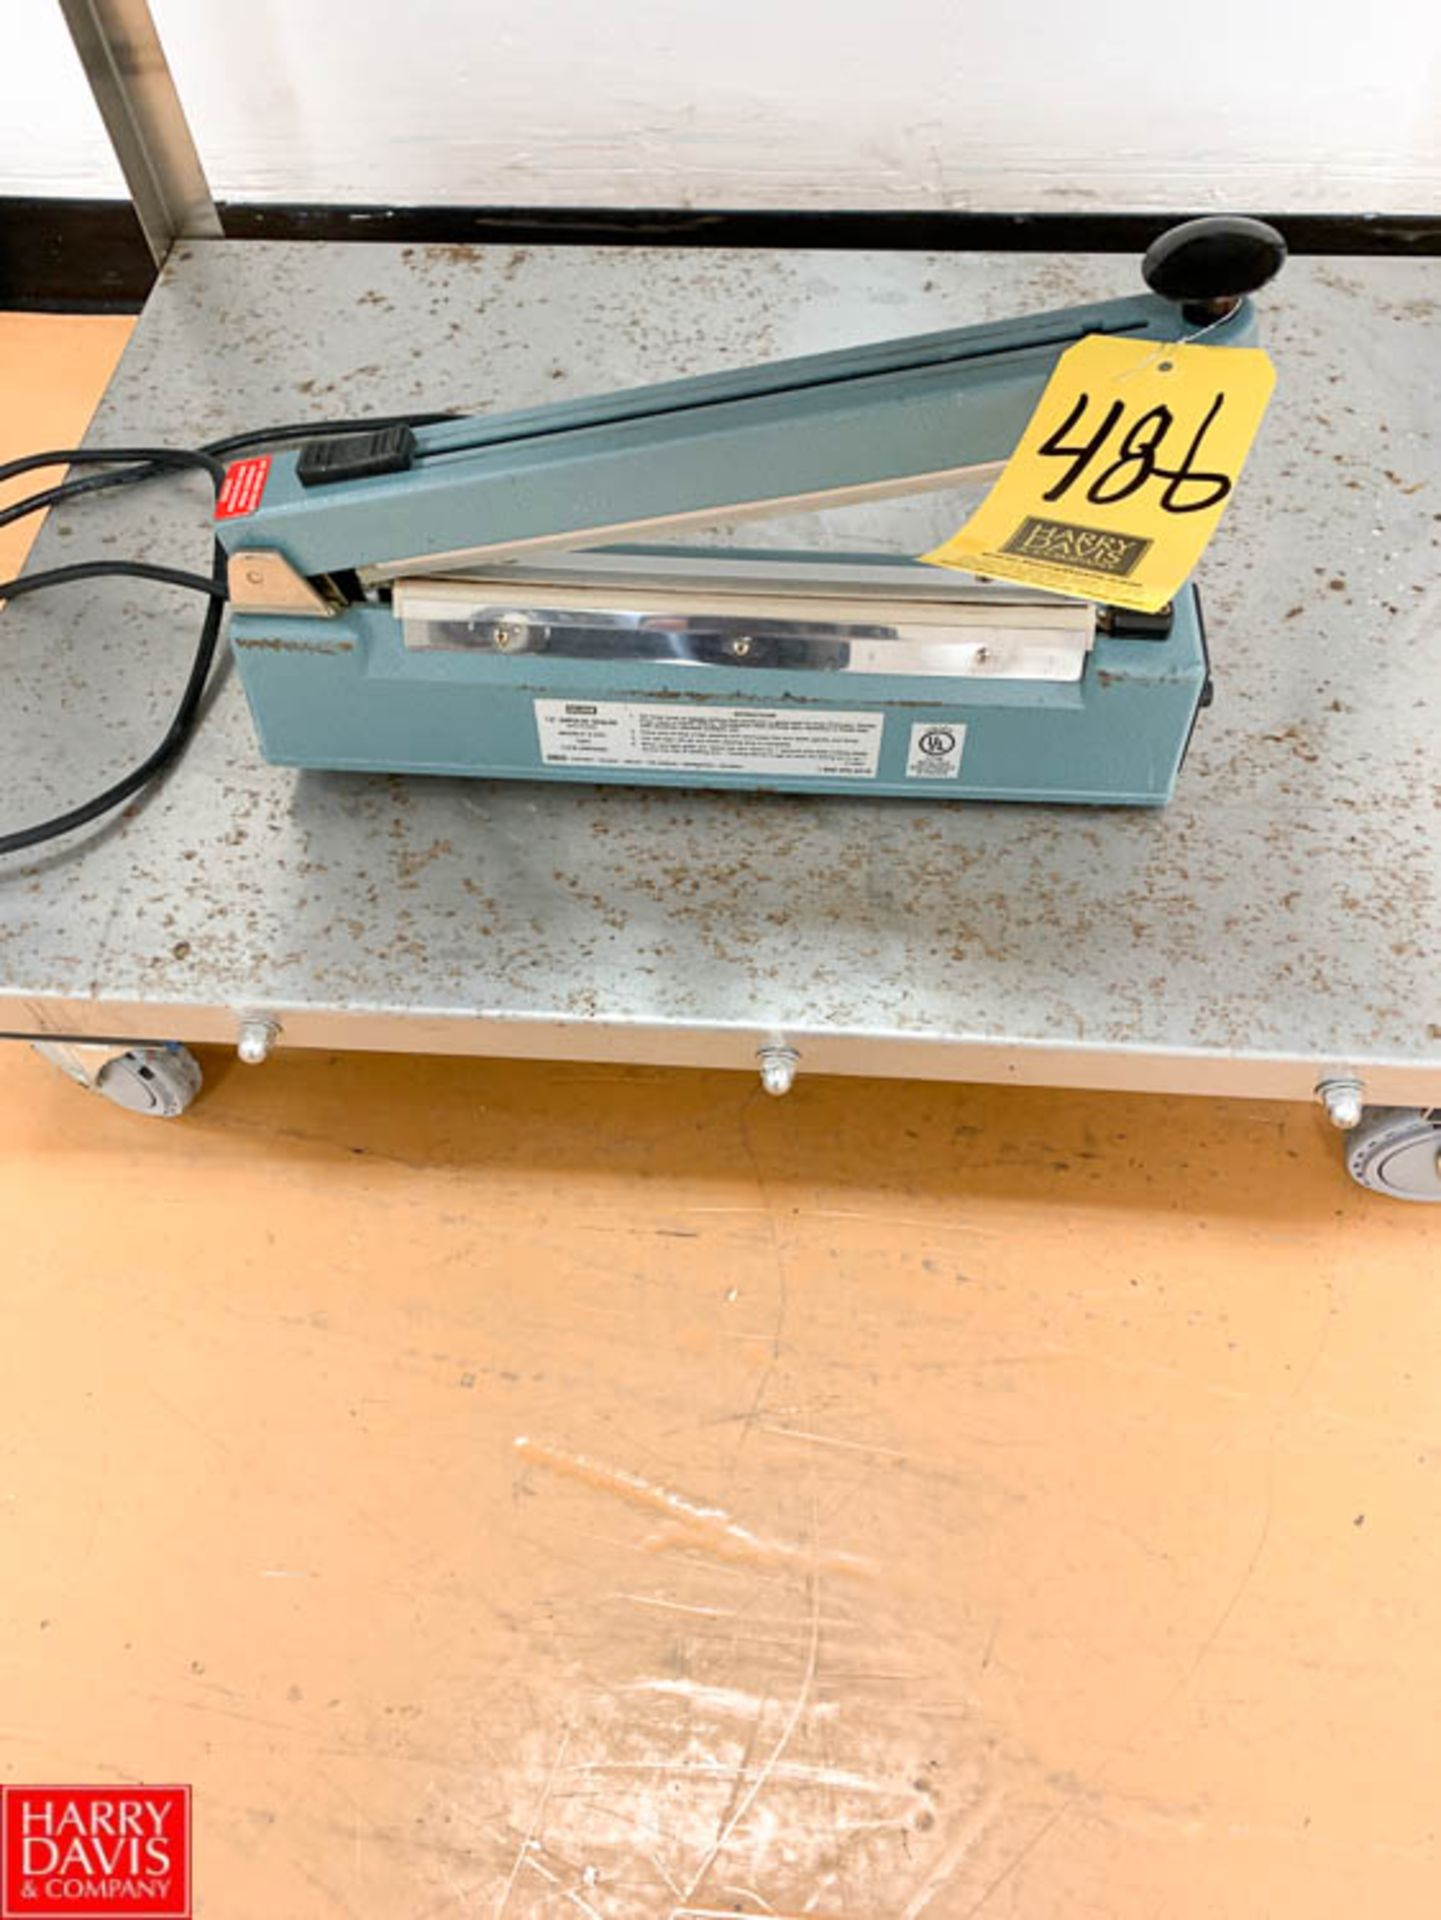 Lot 486 - Uline Heat Sealer Rigging Prices: 25